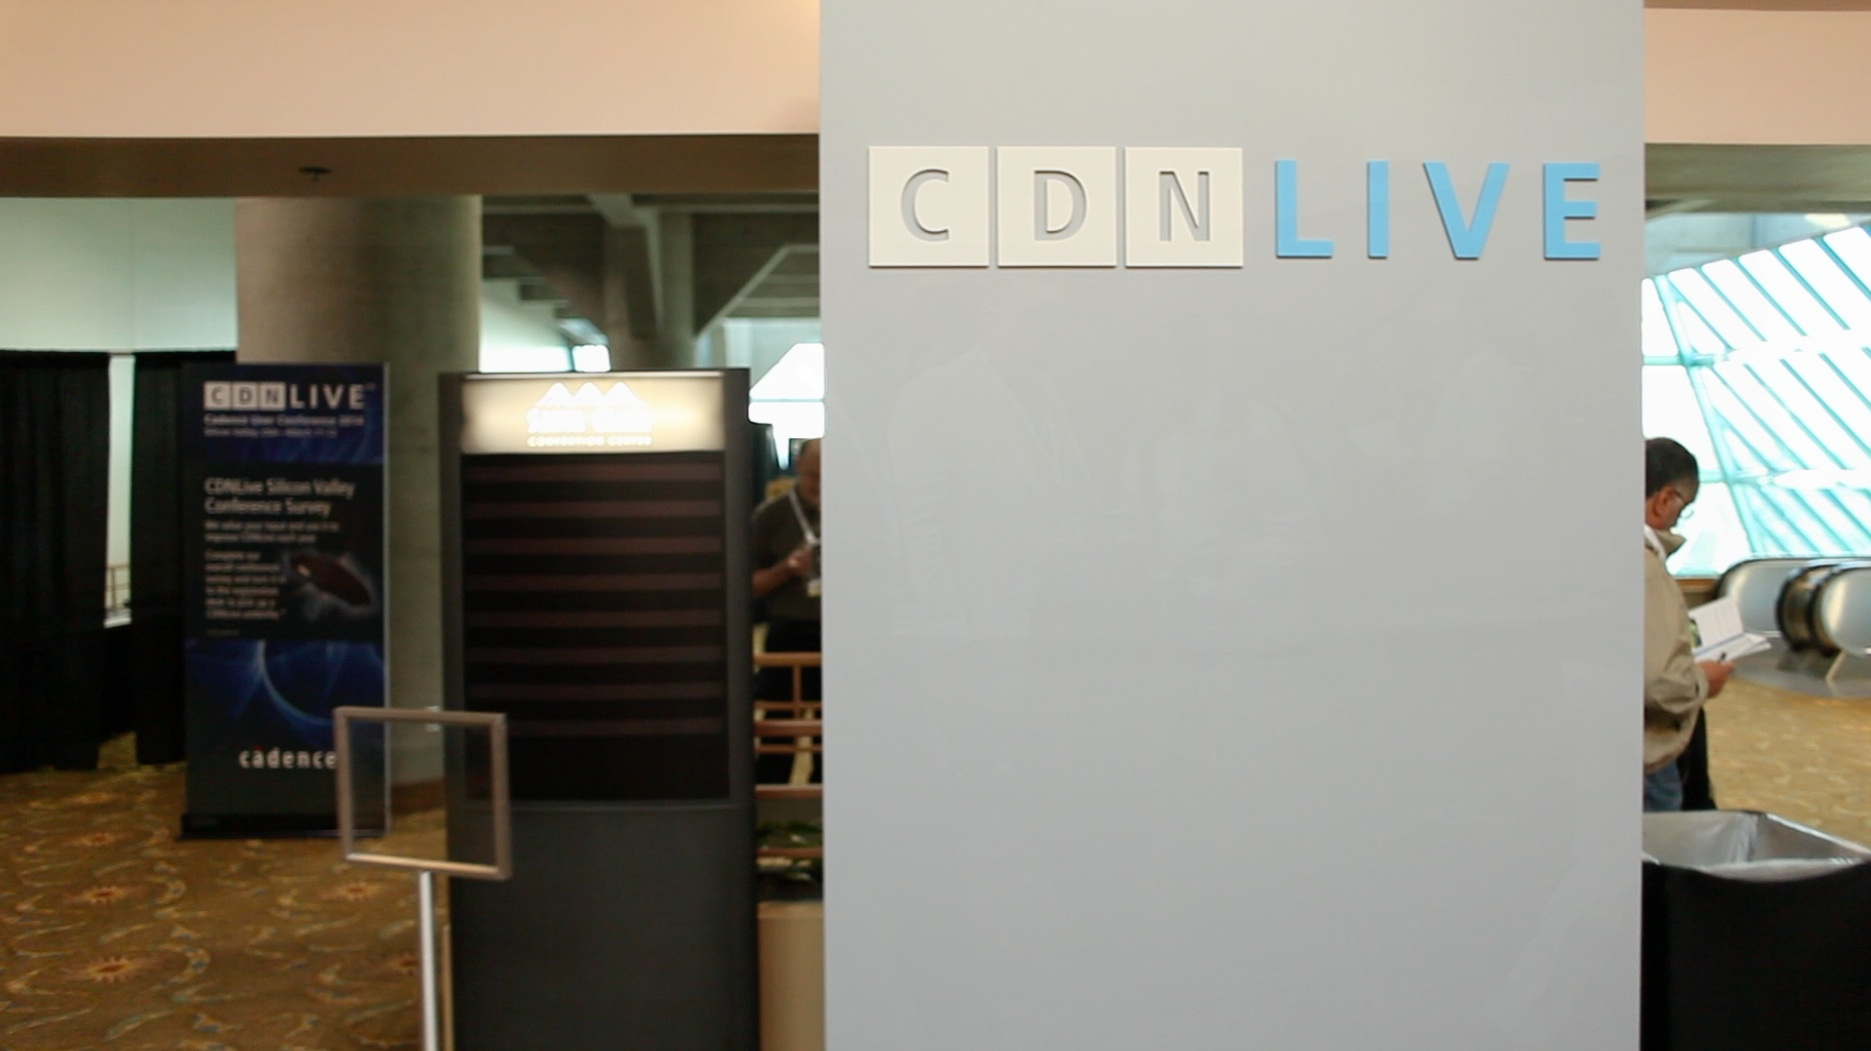 CDNLive 2014 Day 1 Keynote Highlights